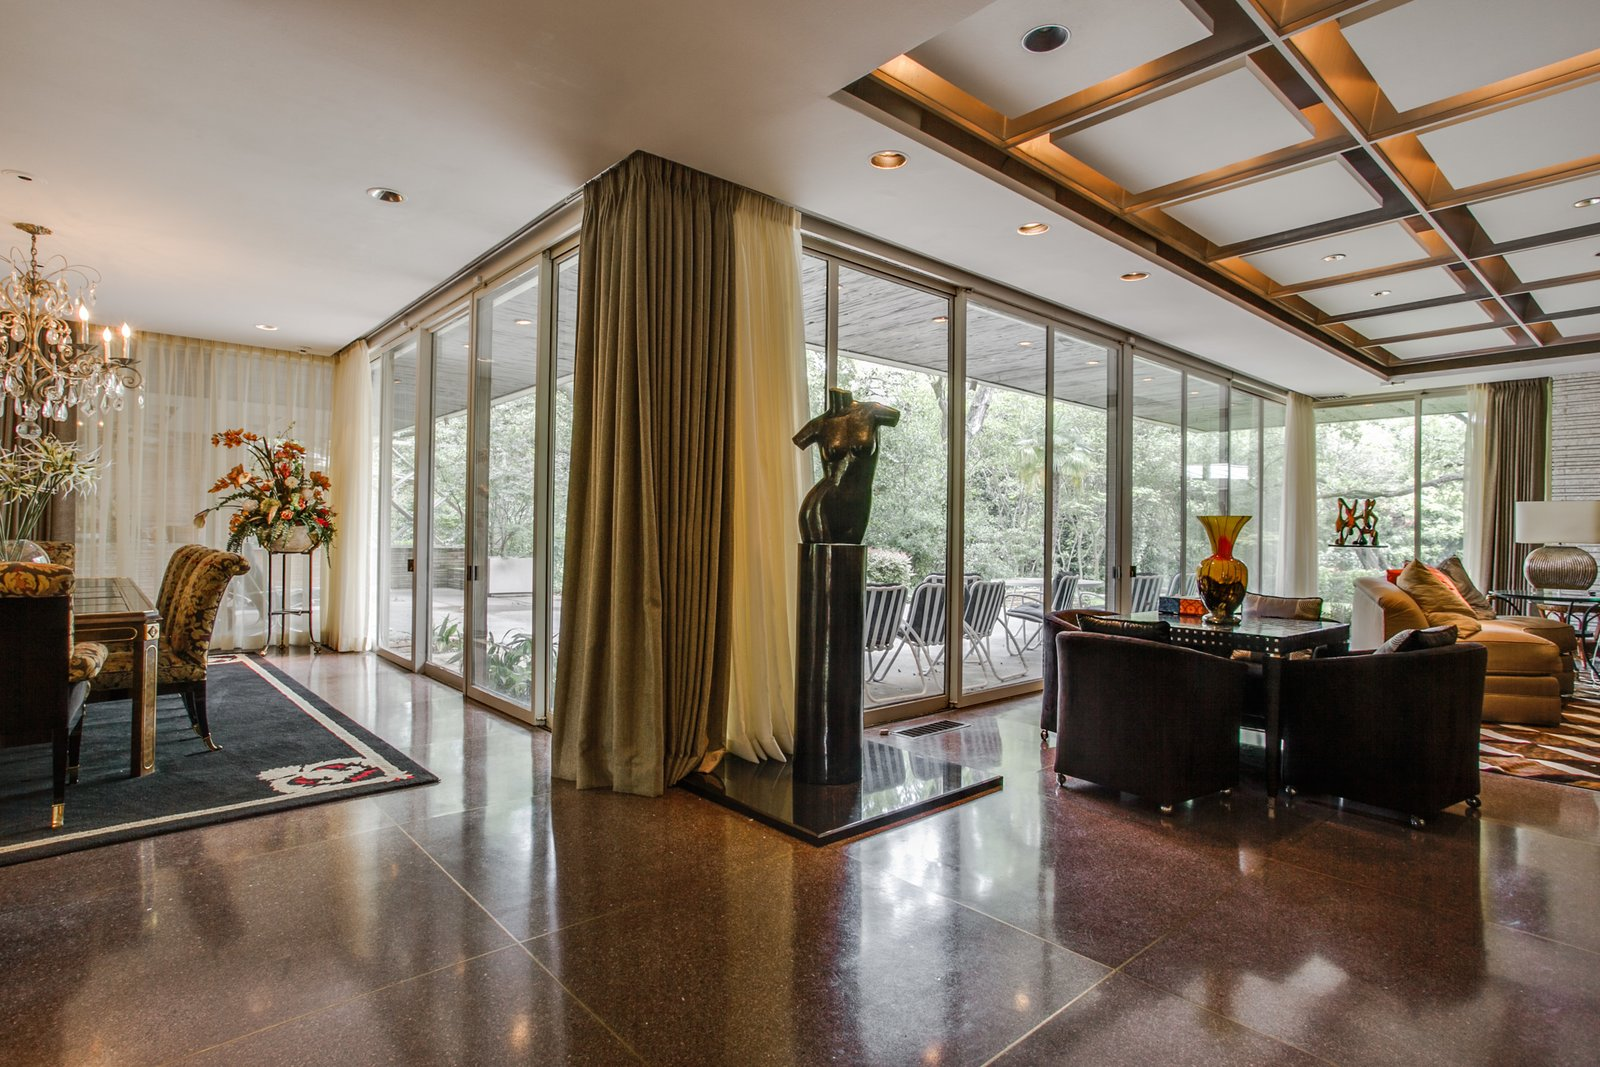 Living, End Tables, Ceiling, Sofa, Lamps, Table, Recessed, Chair, Table, and Terrazzo A series of sliding doors frame the exterior landscape and lead out to the patio.  Best Living Table Terrazzo Photos from A Frank Lloyd Wright-Inspired Waterfront Masterpiece in Dallas Is Up For Auction